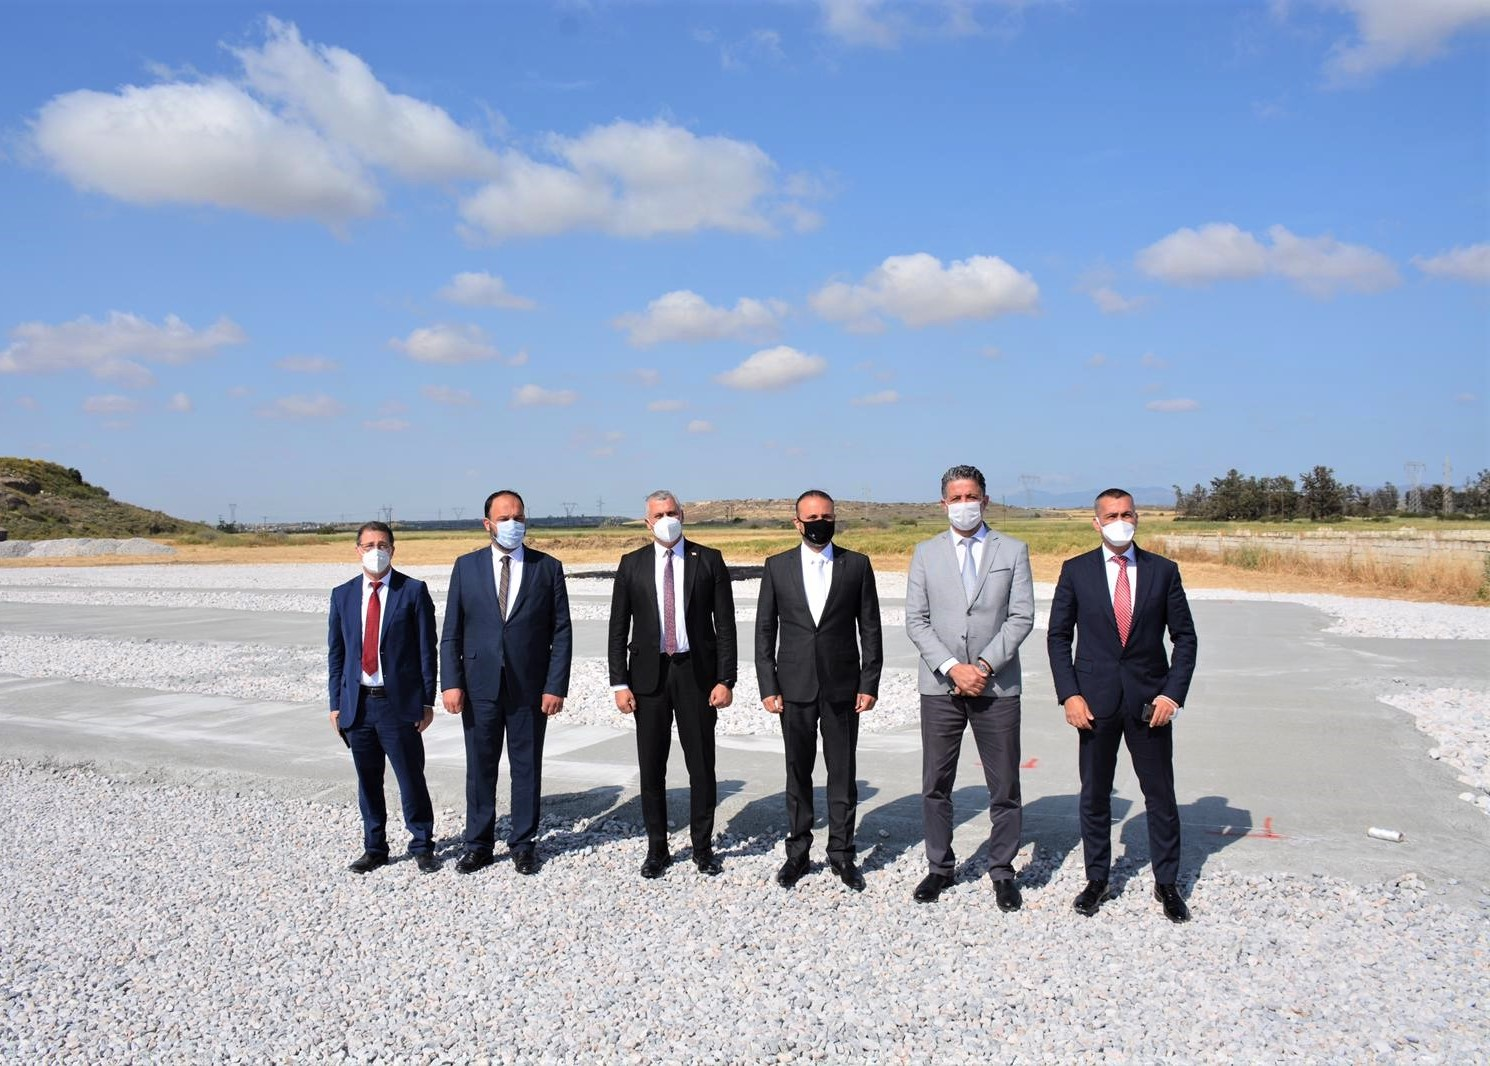 The Near East Enterprises will establish the second of the 6 State Primary Schools in 6 districts of the TRNC, in Iskele